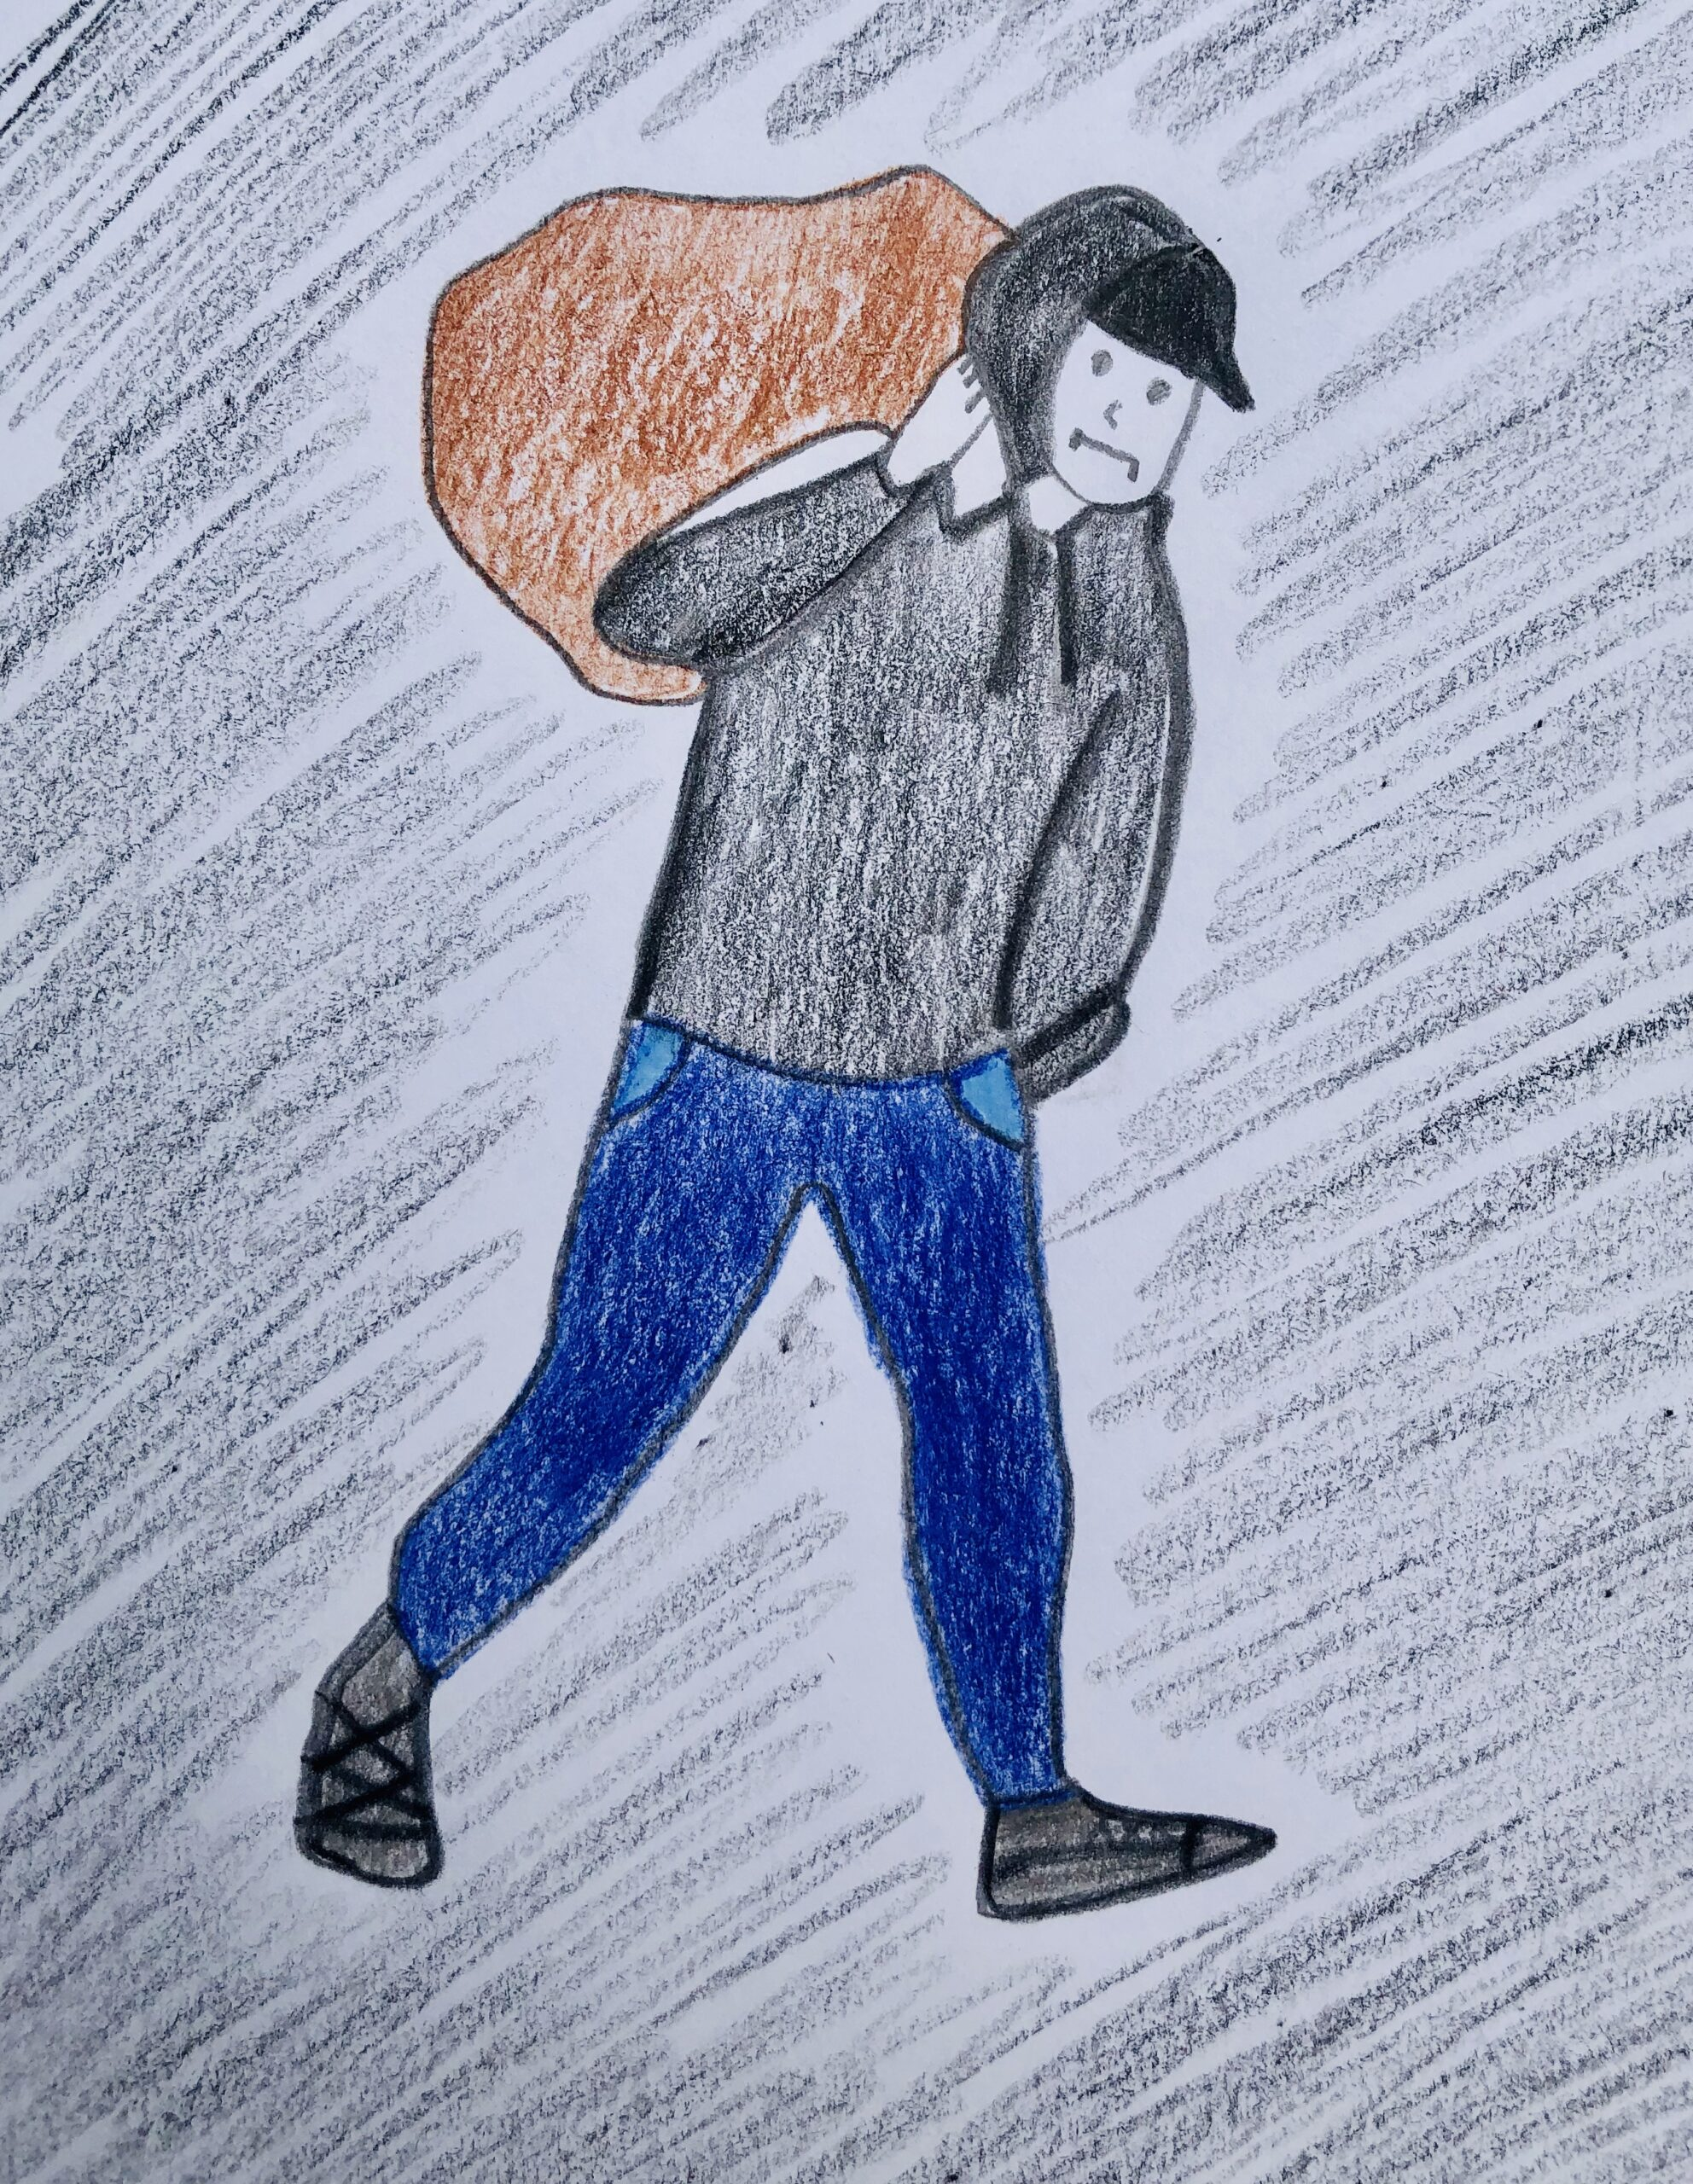 Colored pencil drawing of a boy, blue pants and black sweatshirt, carrying a brown sack for the mystery story, The Case of the Missing chips.